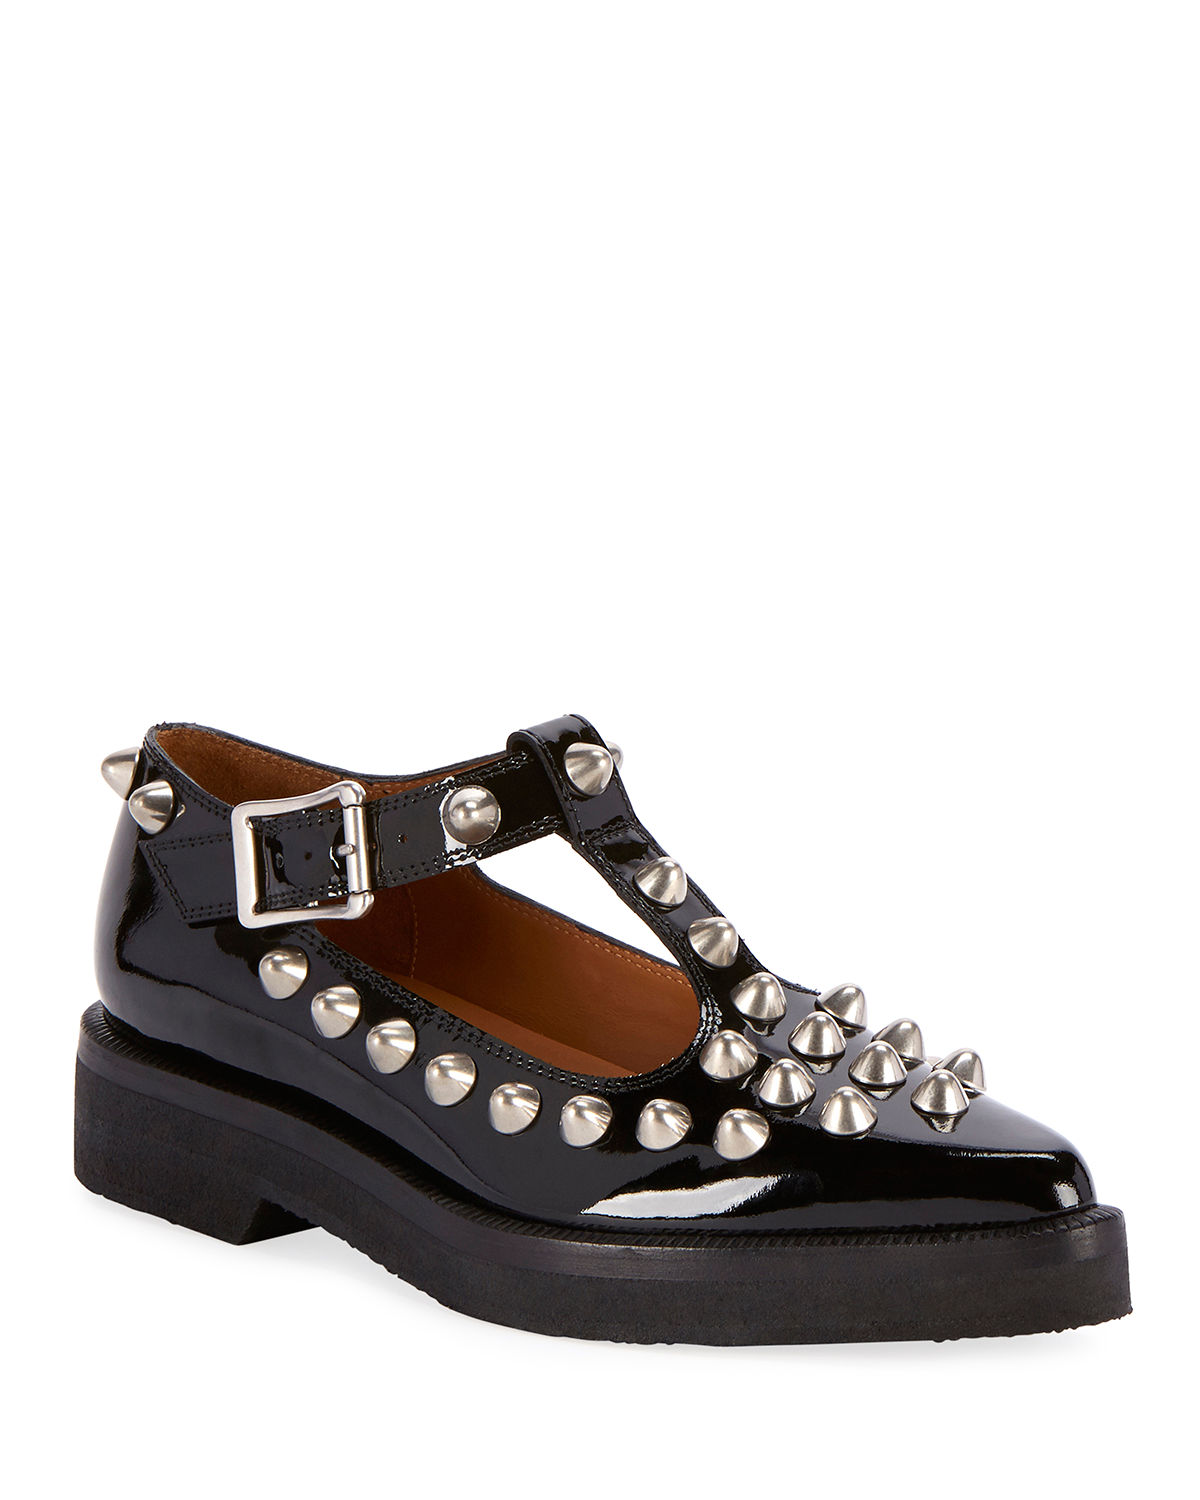 The Mary Jane Studded Flats by Marc Jacobs